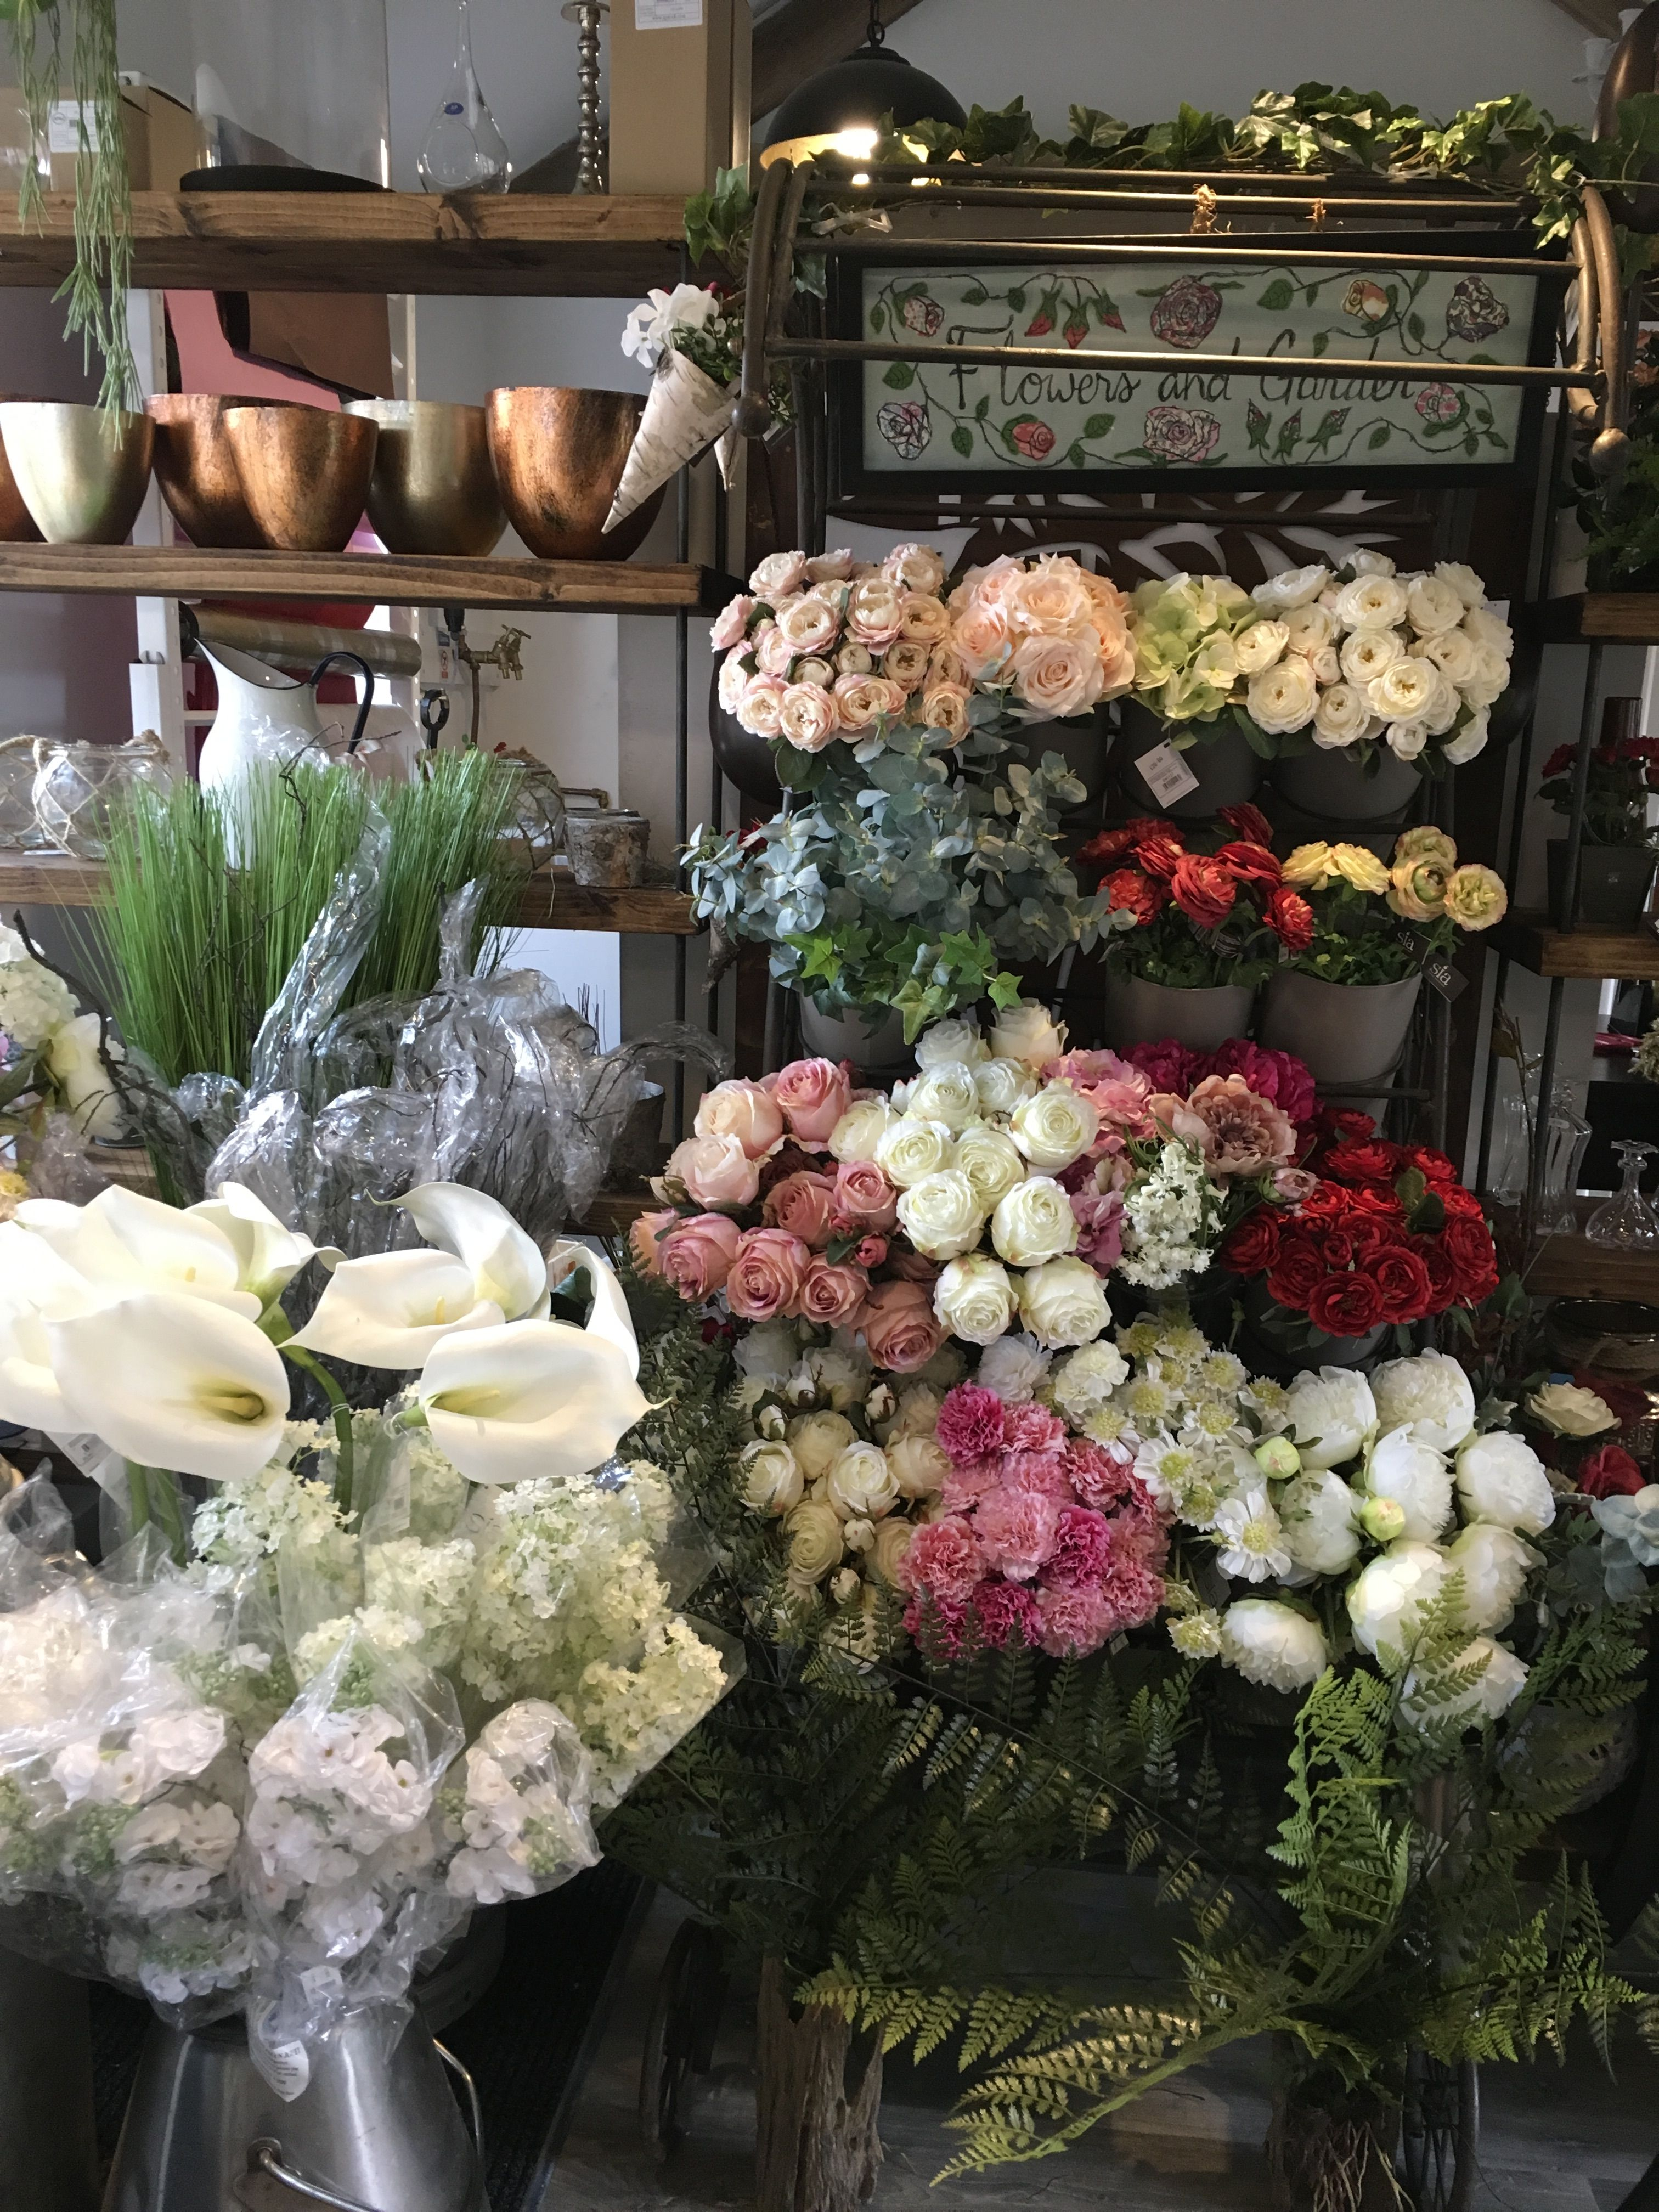 Sia silk flowers on sale at ambers rose florist sprowston norwich sia silk flowers on sale at ambers rose florist sprowston norwich mightylinksfo